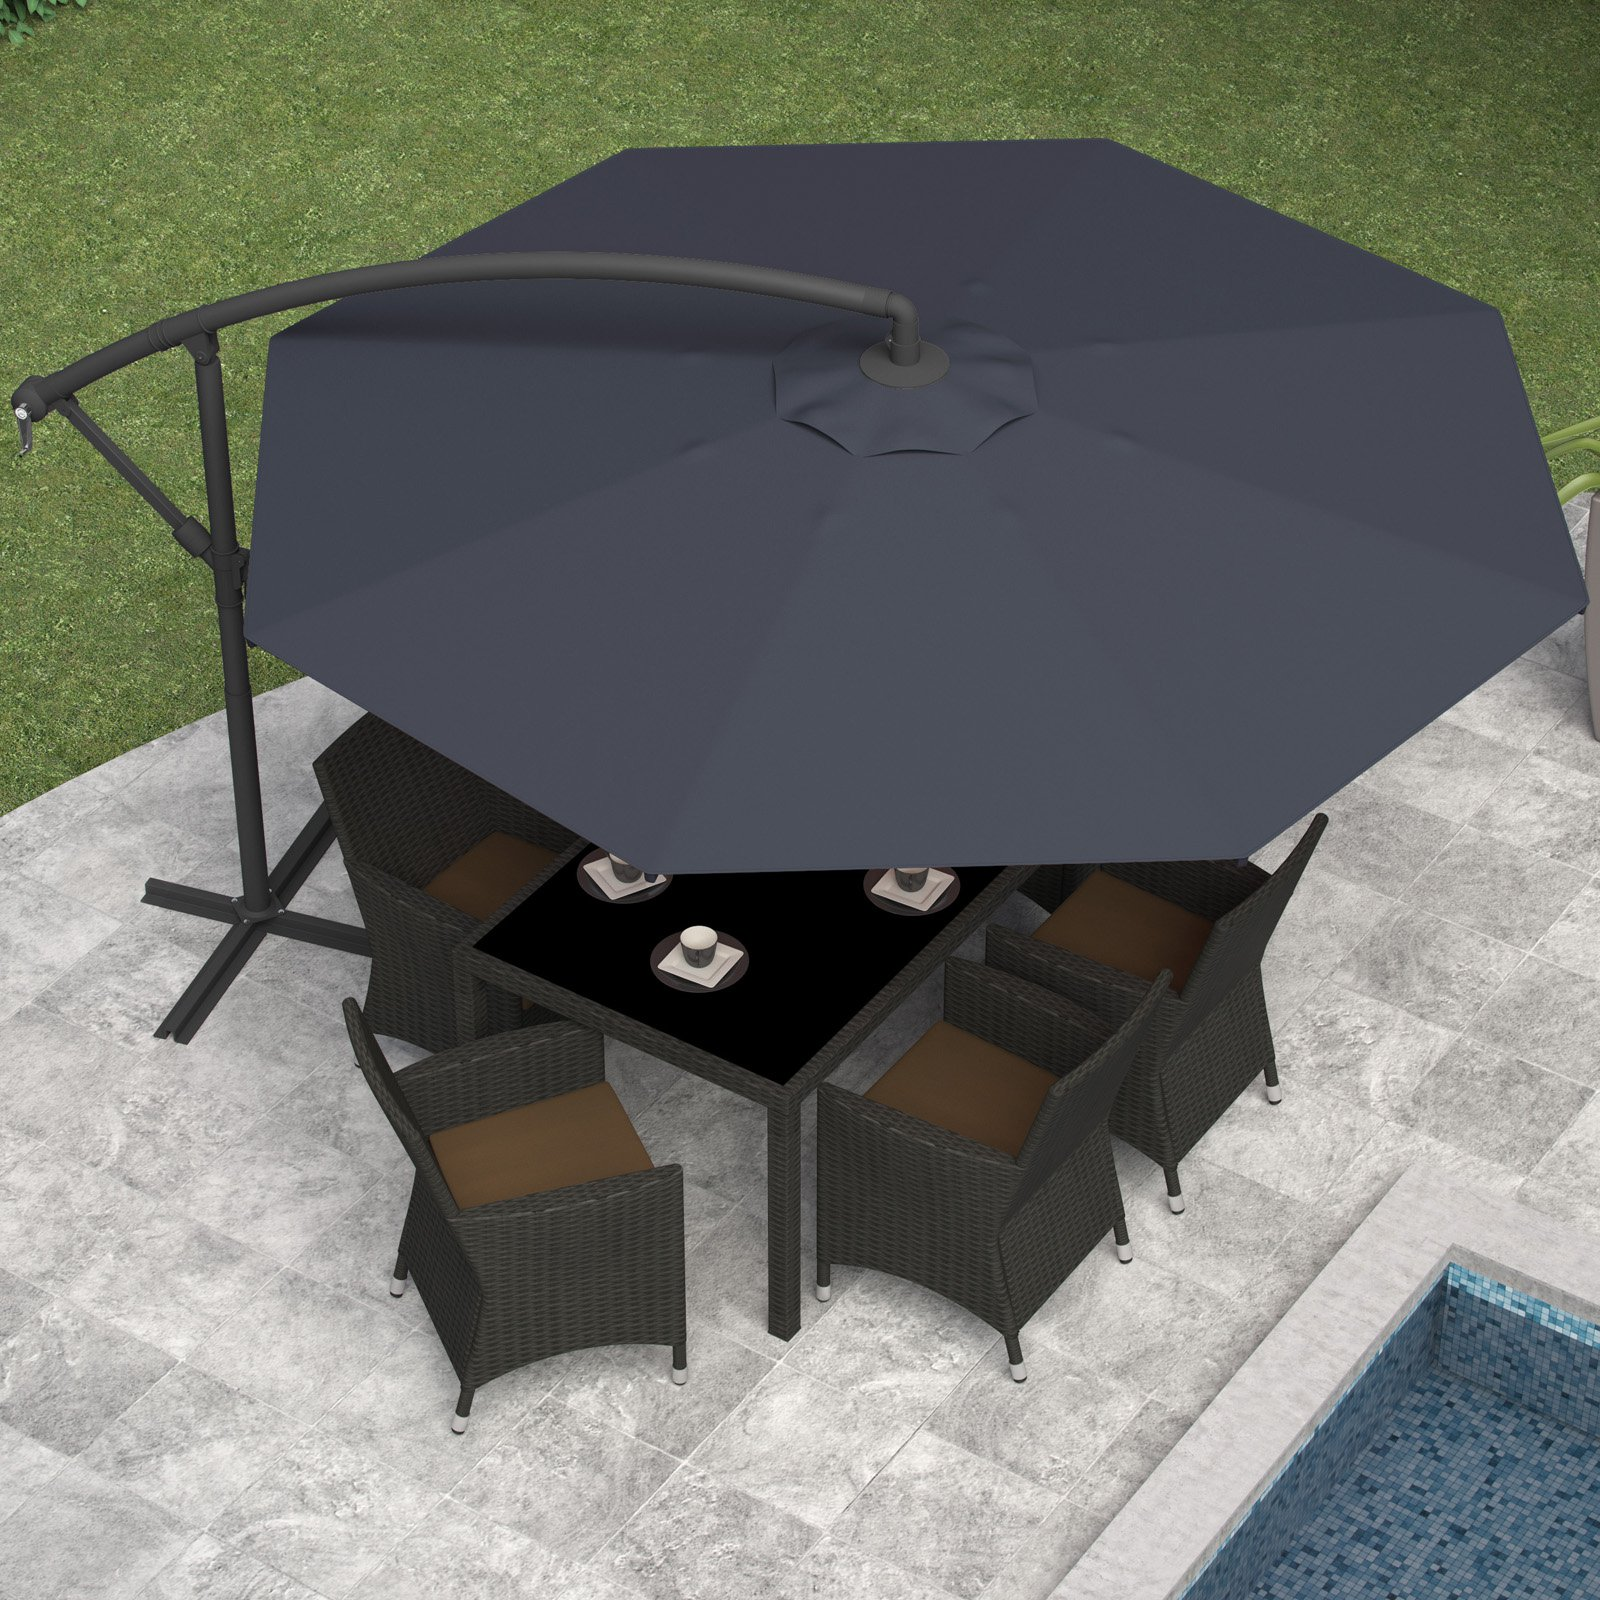 accessories replac patio for with market pole umbrella ideas parts southern interesting umbrellas world patios replacement canopy tips